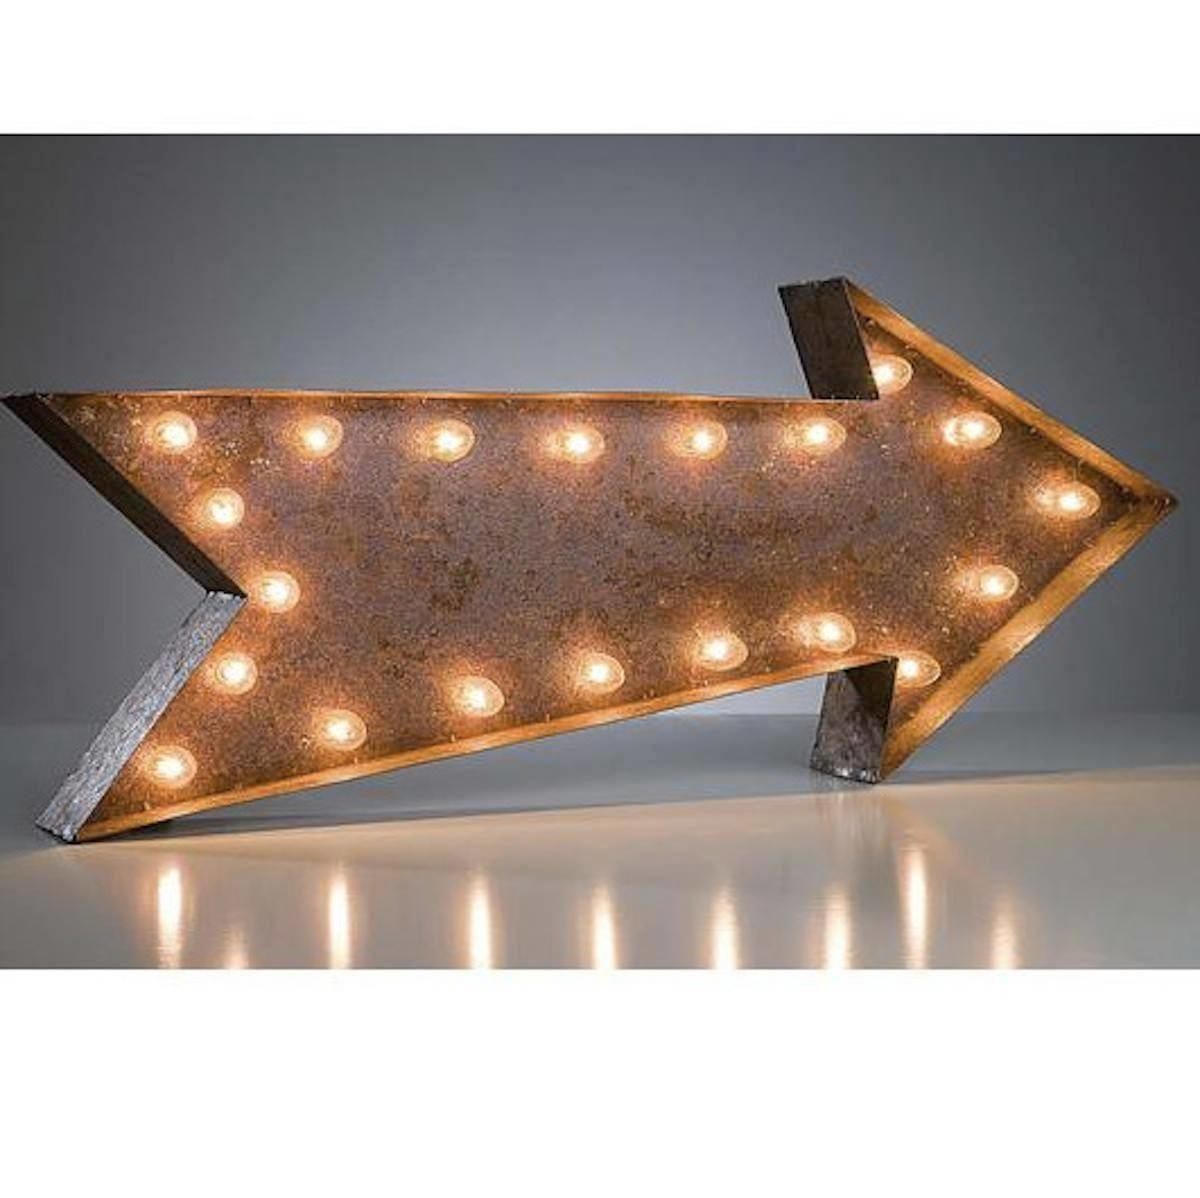 Large Arrow Vintage Marquee Sign Lights Rustic